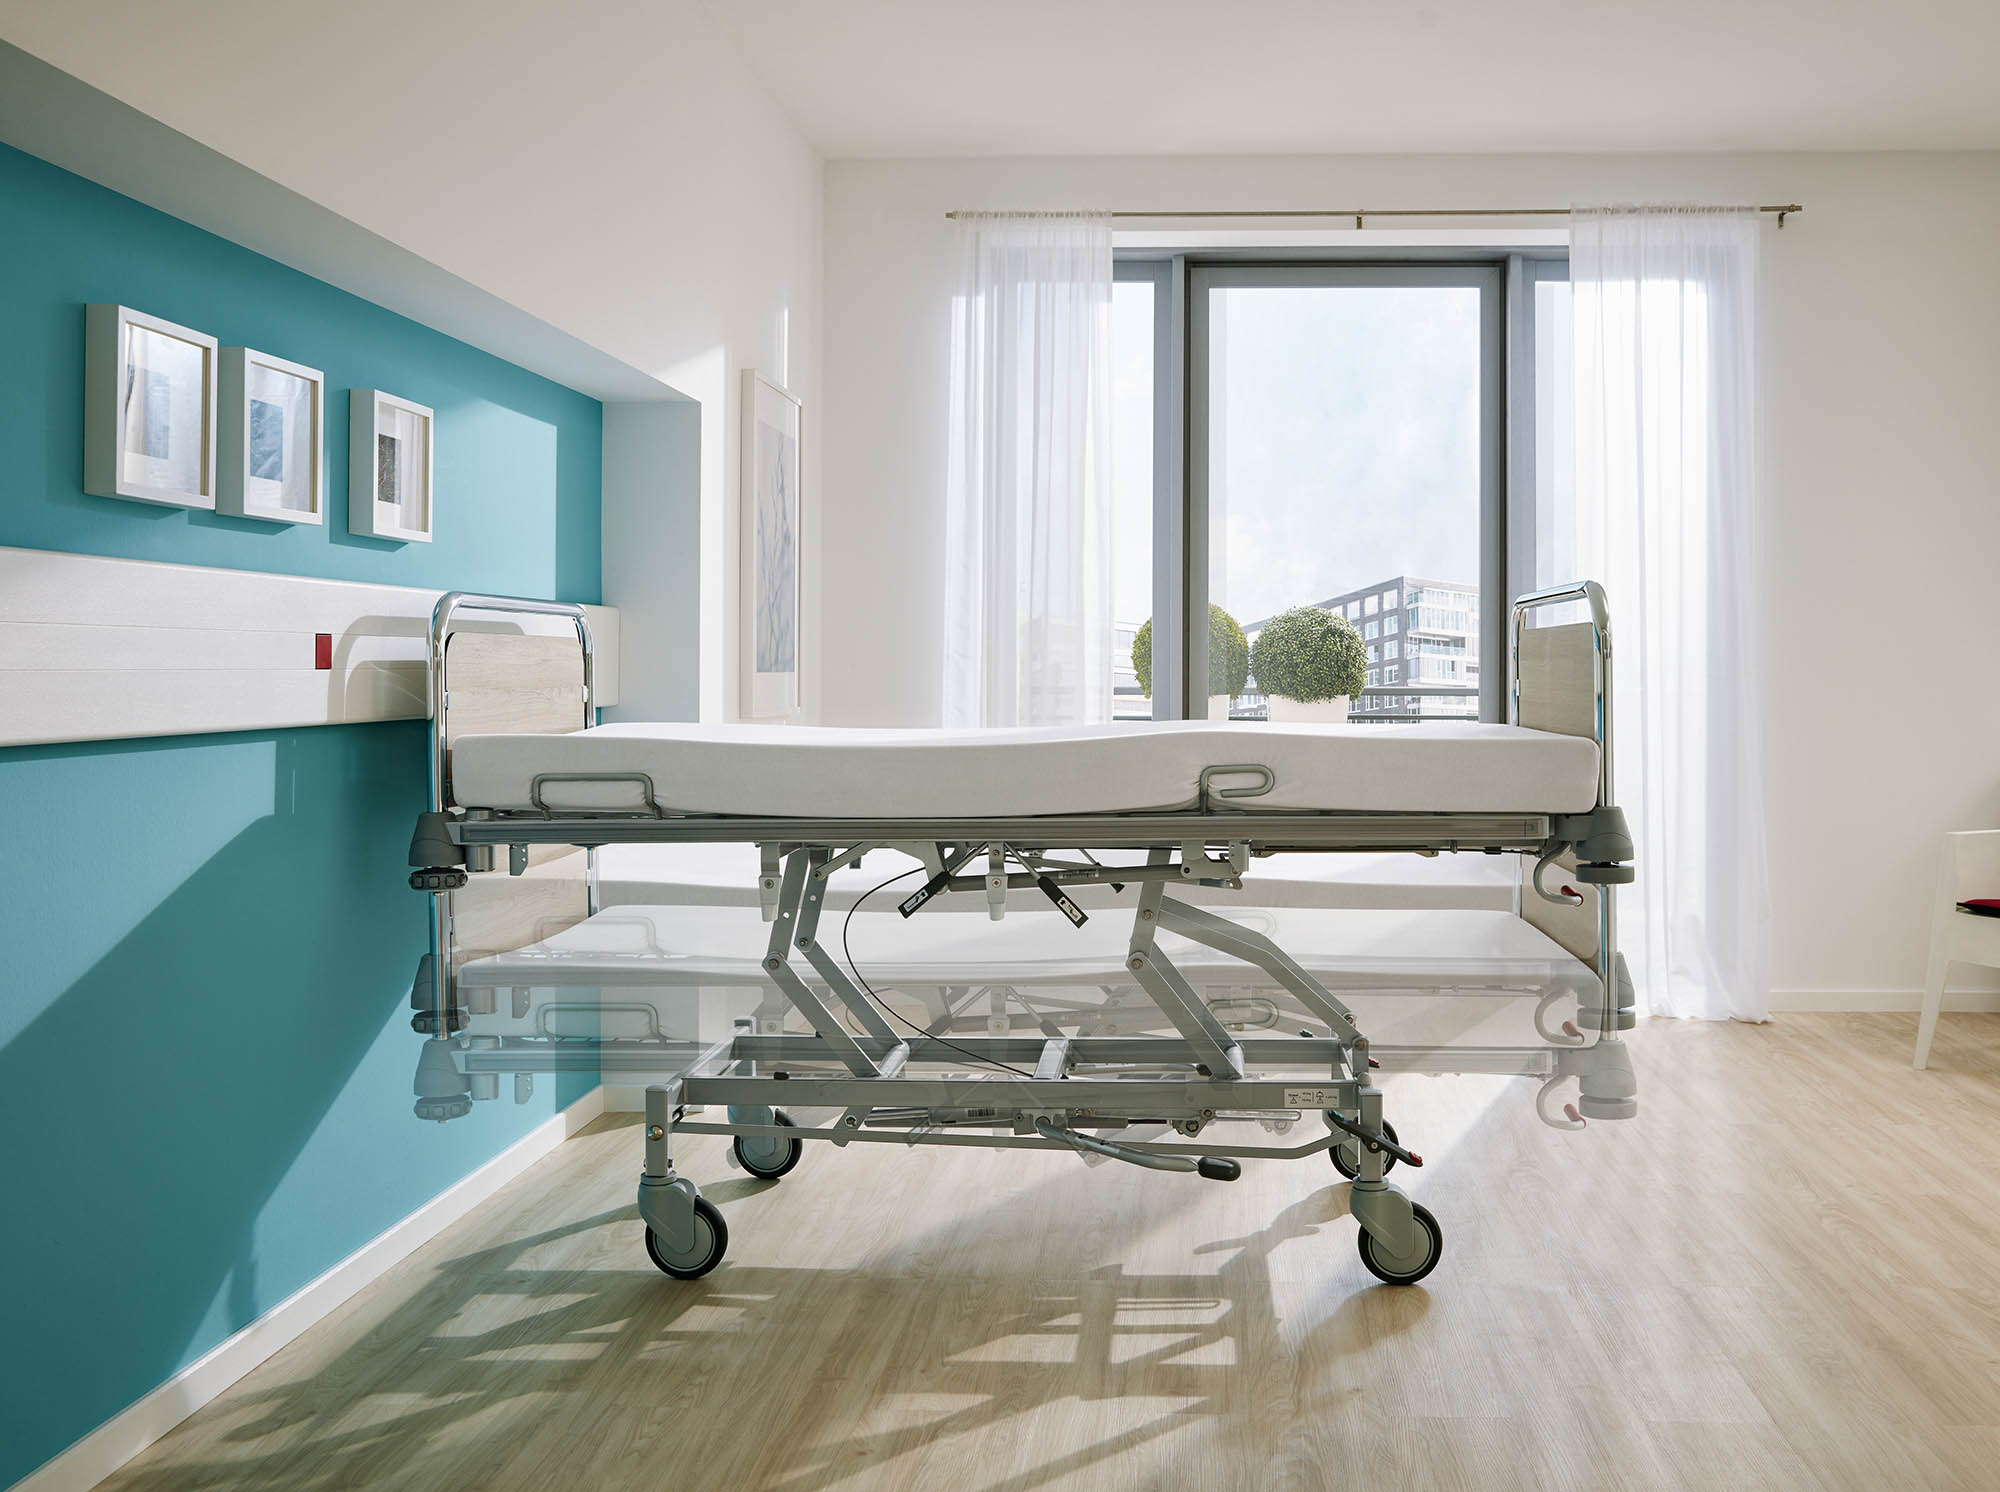 Hydraulic height adjustment of the Vivendo pro hospital bed